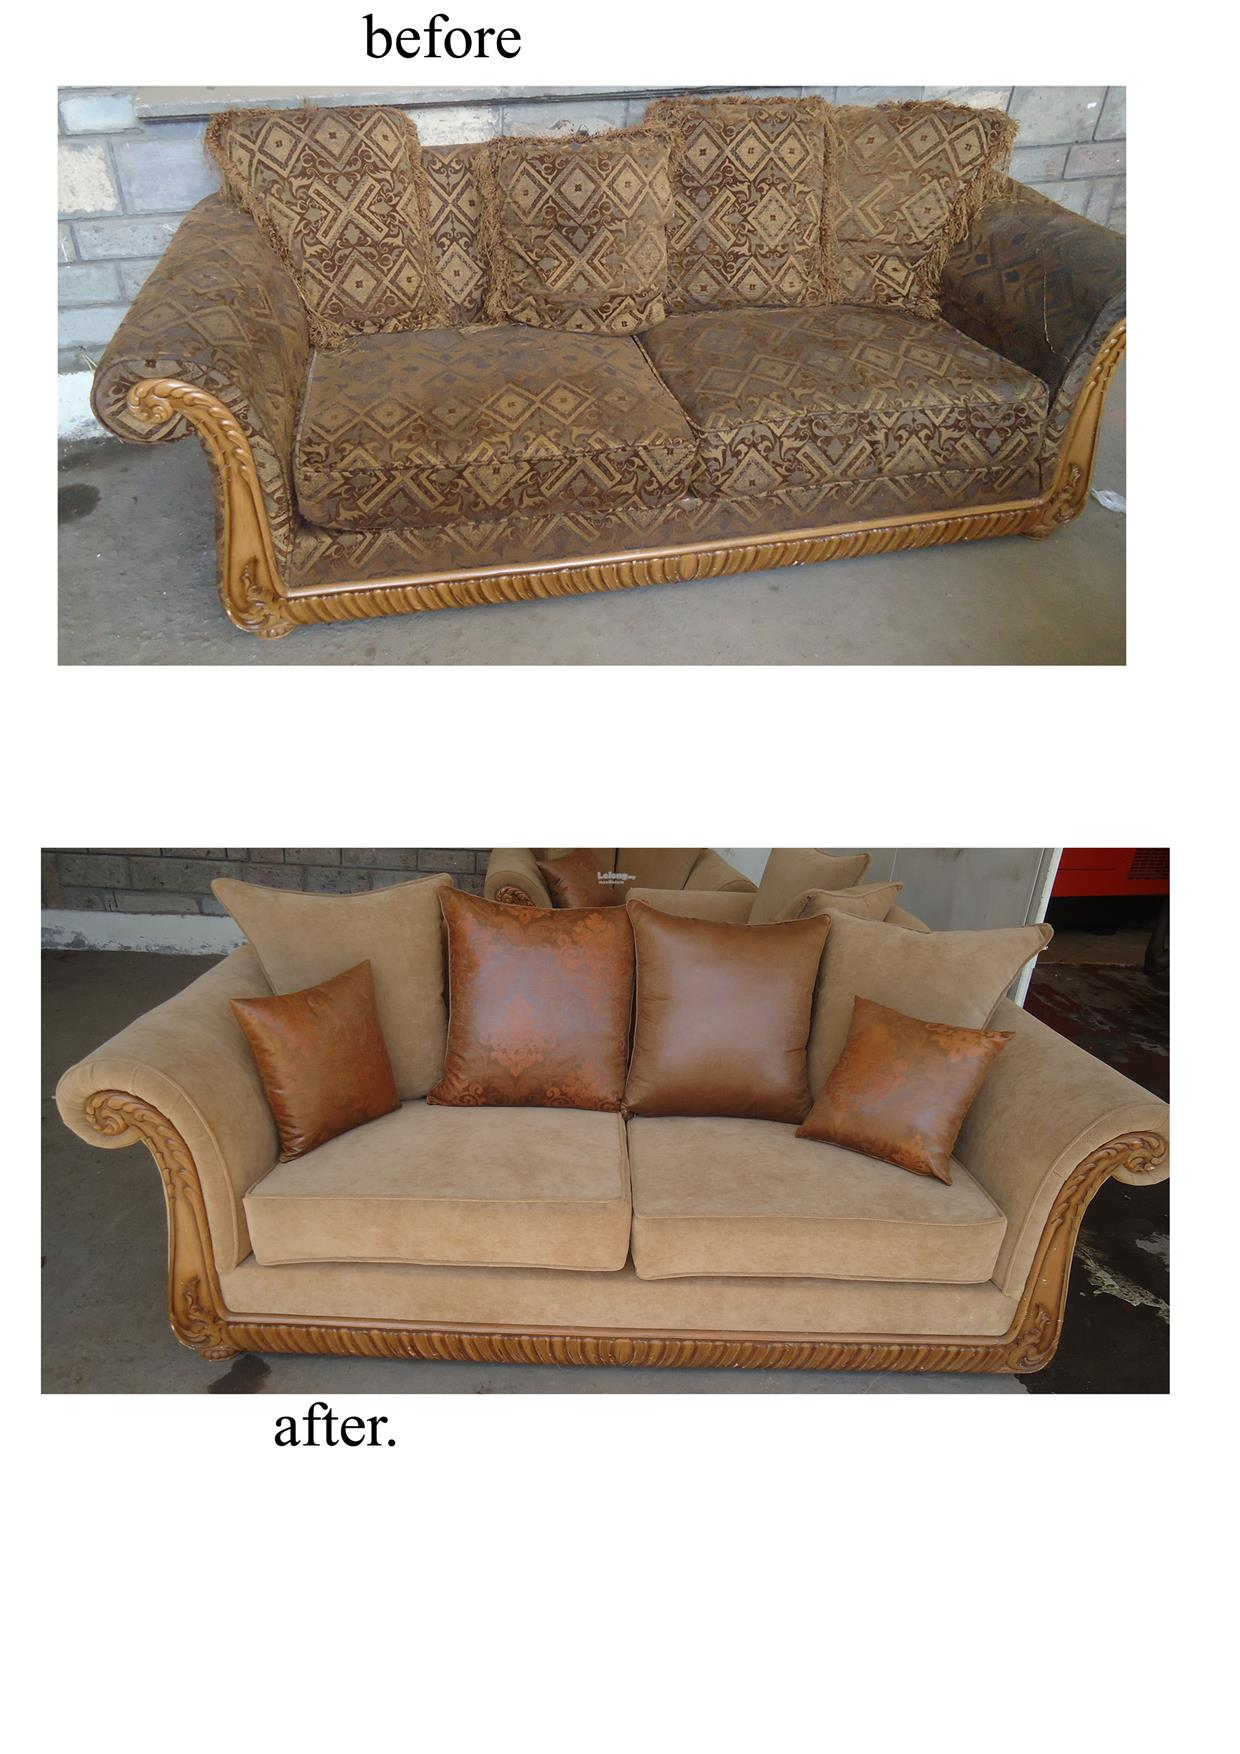 repair sofa wood frame standard dimensions cm refurbish renew reupho end 8 2017 6 15 am